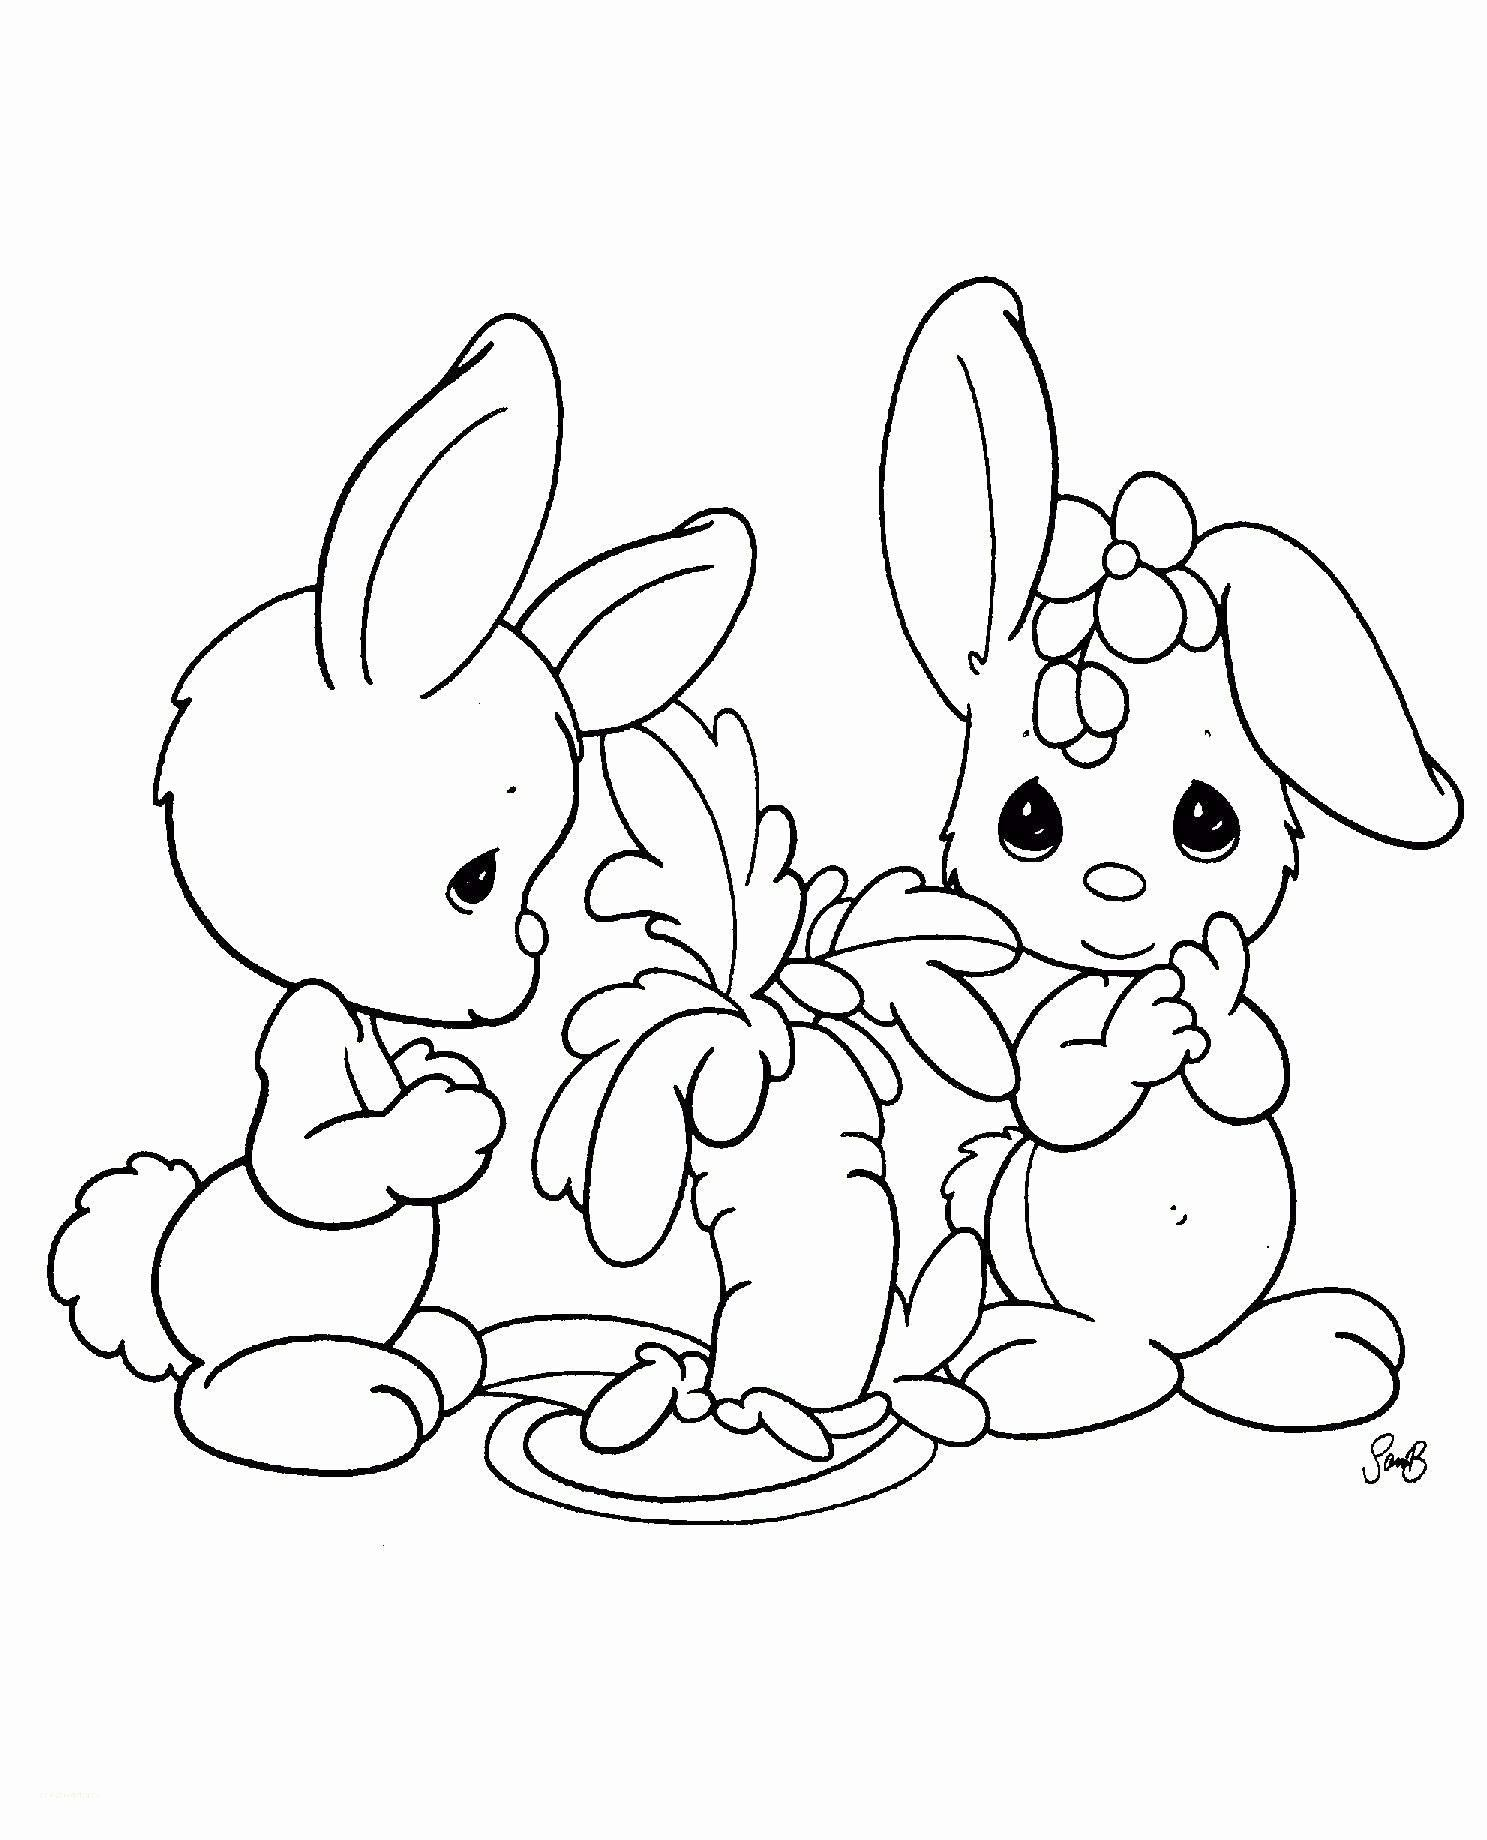 Spring Bunny Coloring Pages Lovely Awesome 15 Cute Easter Bunny Coloring Pages Printab Precious Moments Coloring Pages Bunny Coloring Pages Love Coloring Pages